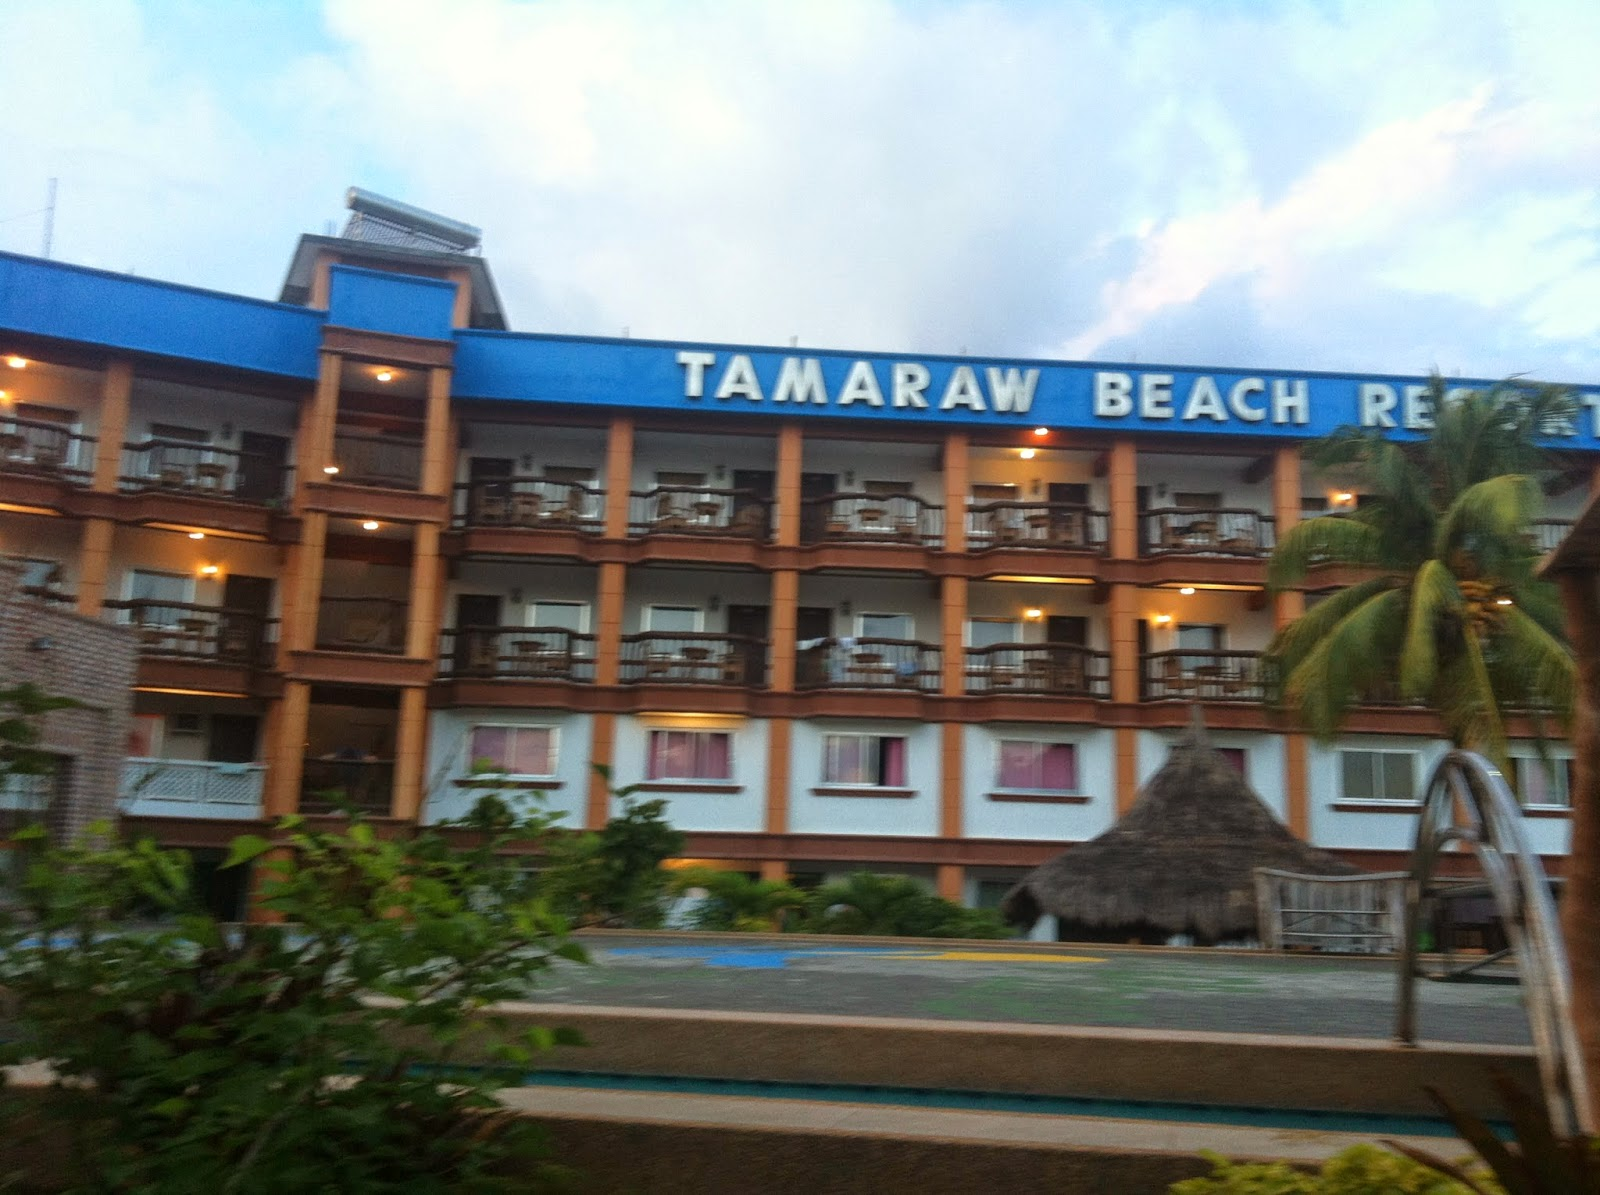 The facade of Tamaraw Beach Resort